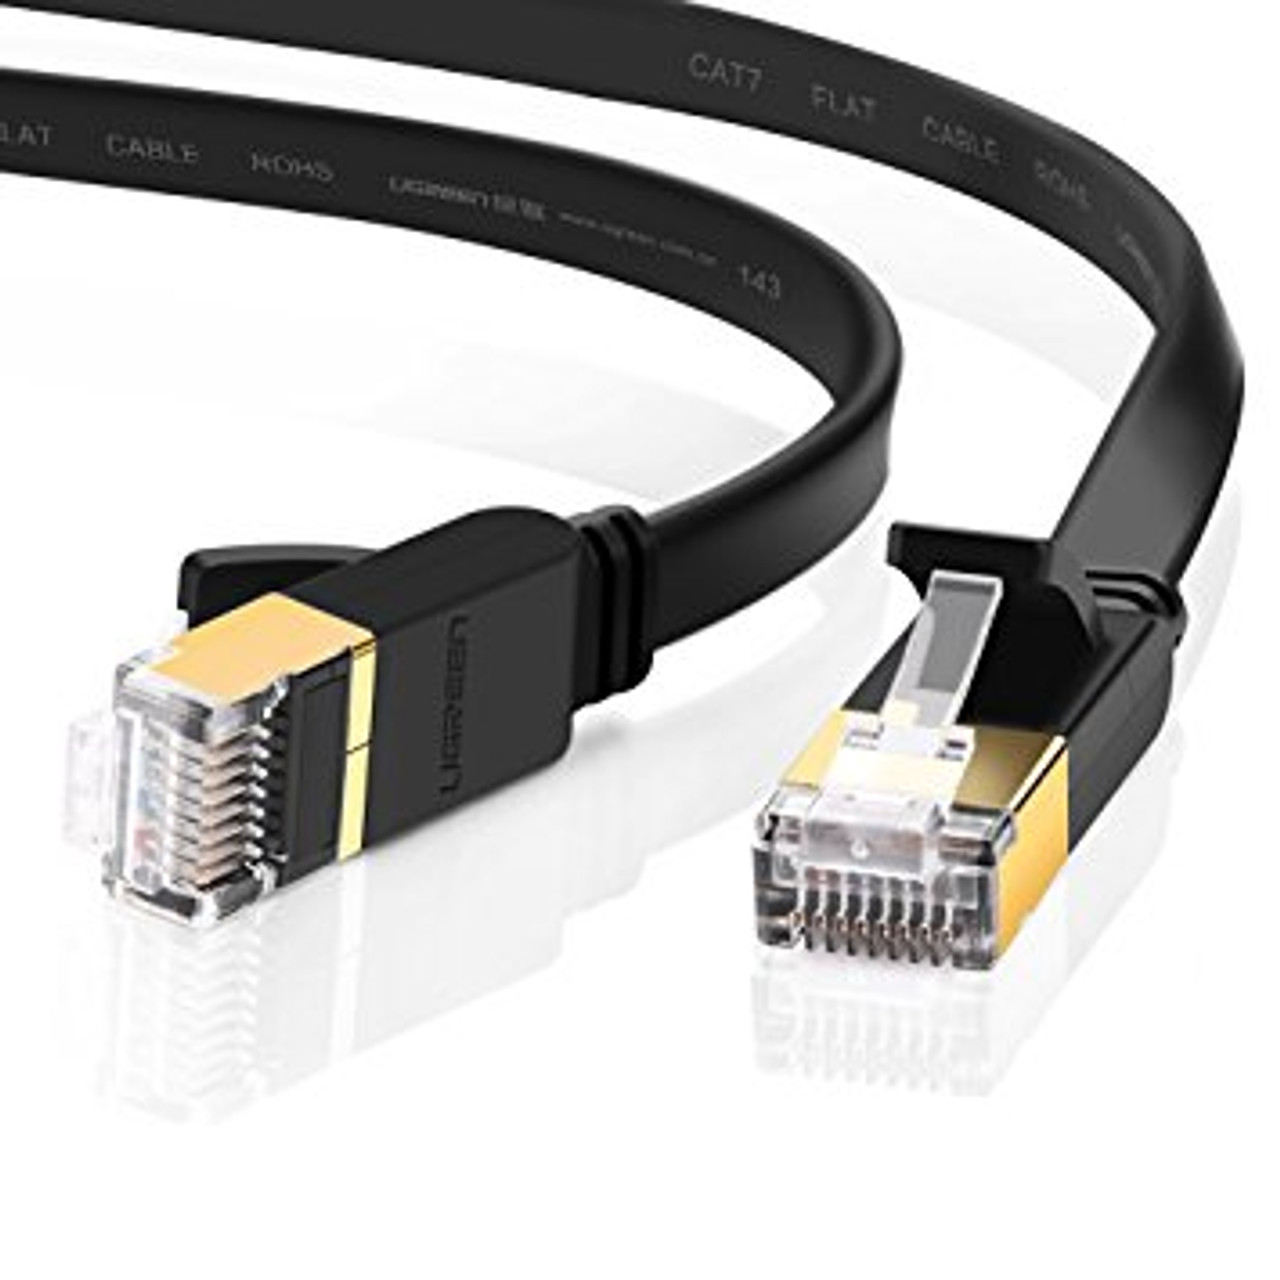 Product image for 10m Black 10GbE Shielded CAT7 Network Cable - Flat | CX Computer Superstore